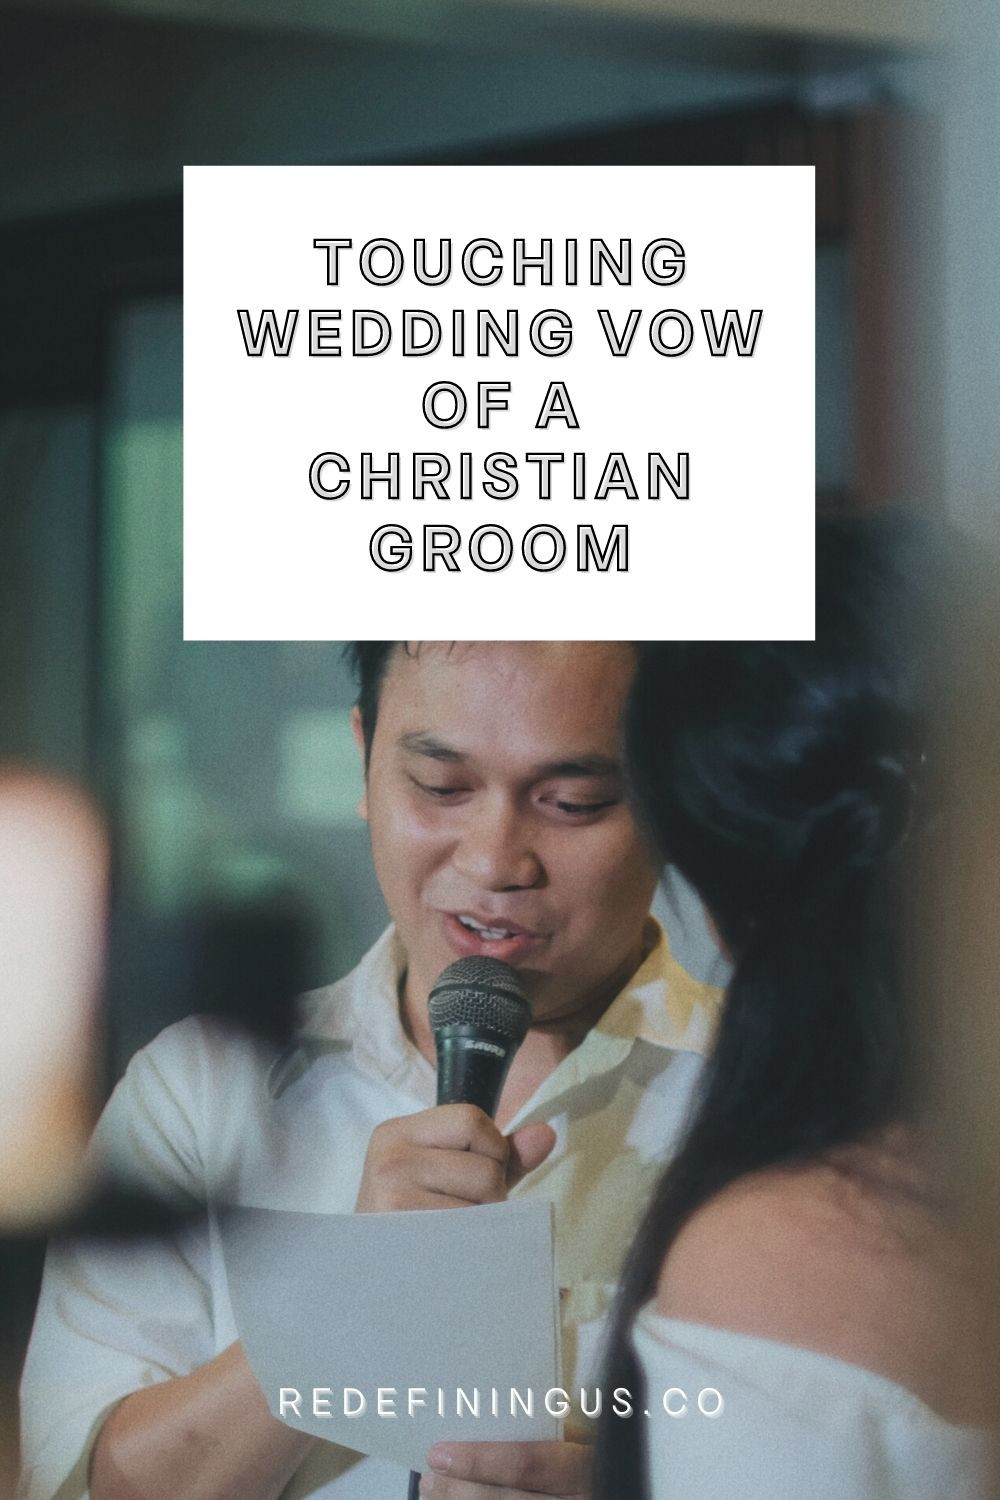 Touching Personal Wedding Vows of a Christian Groom